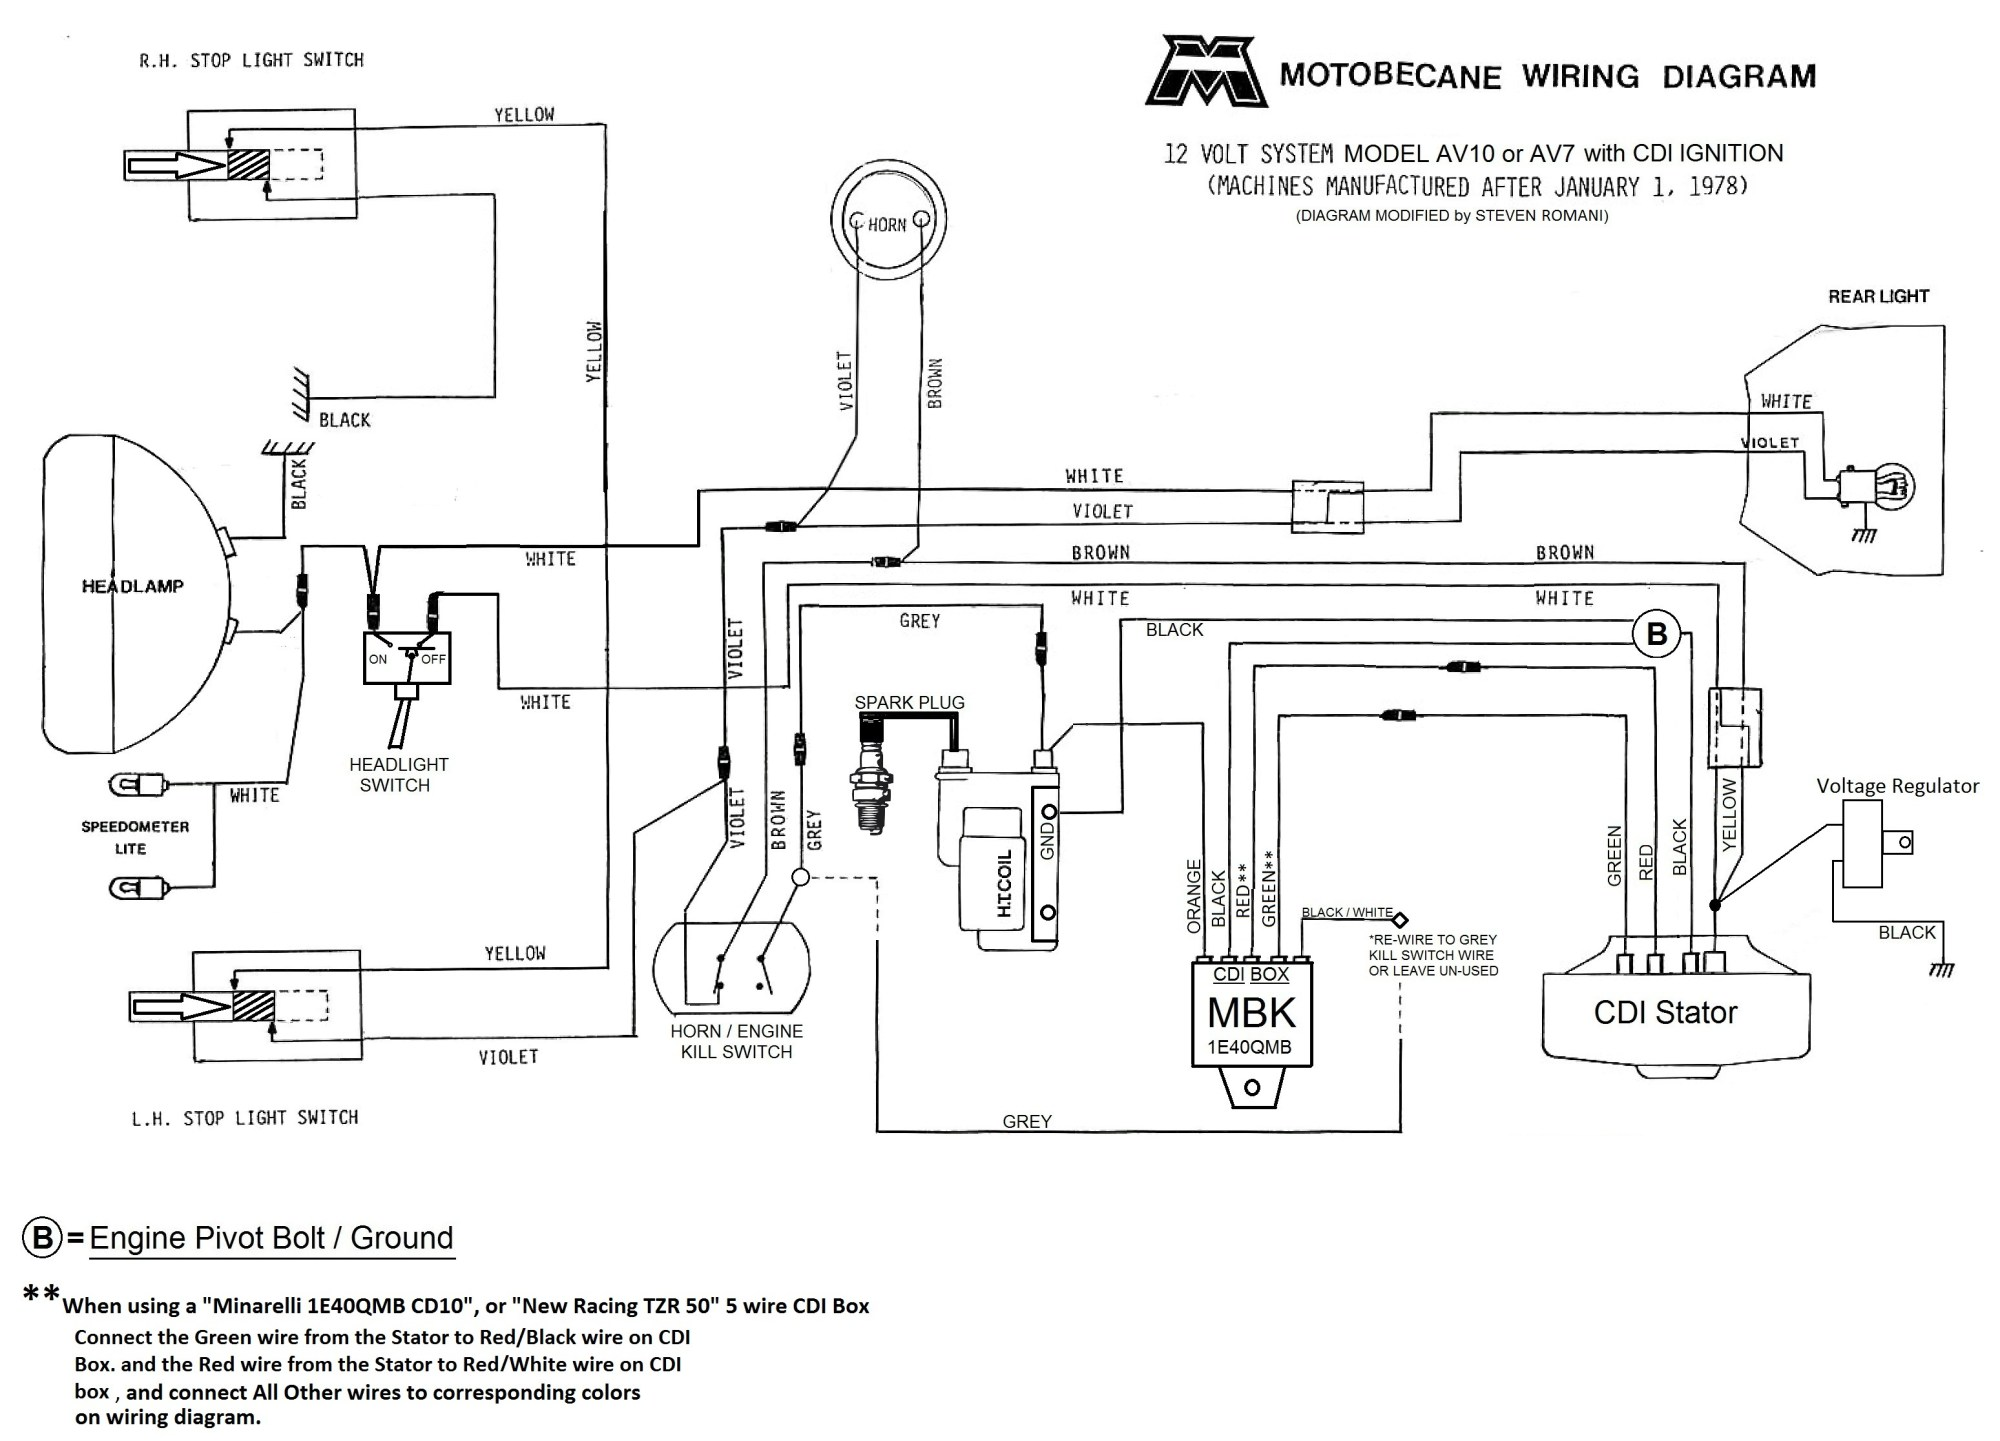 hight resolution of  motobecane 12v cdi wiring diagram av10 and av7 jpg